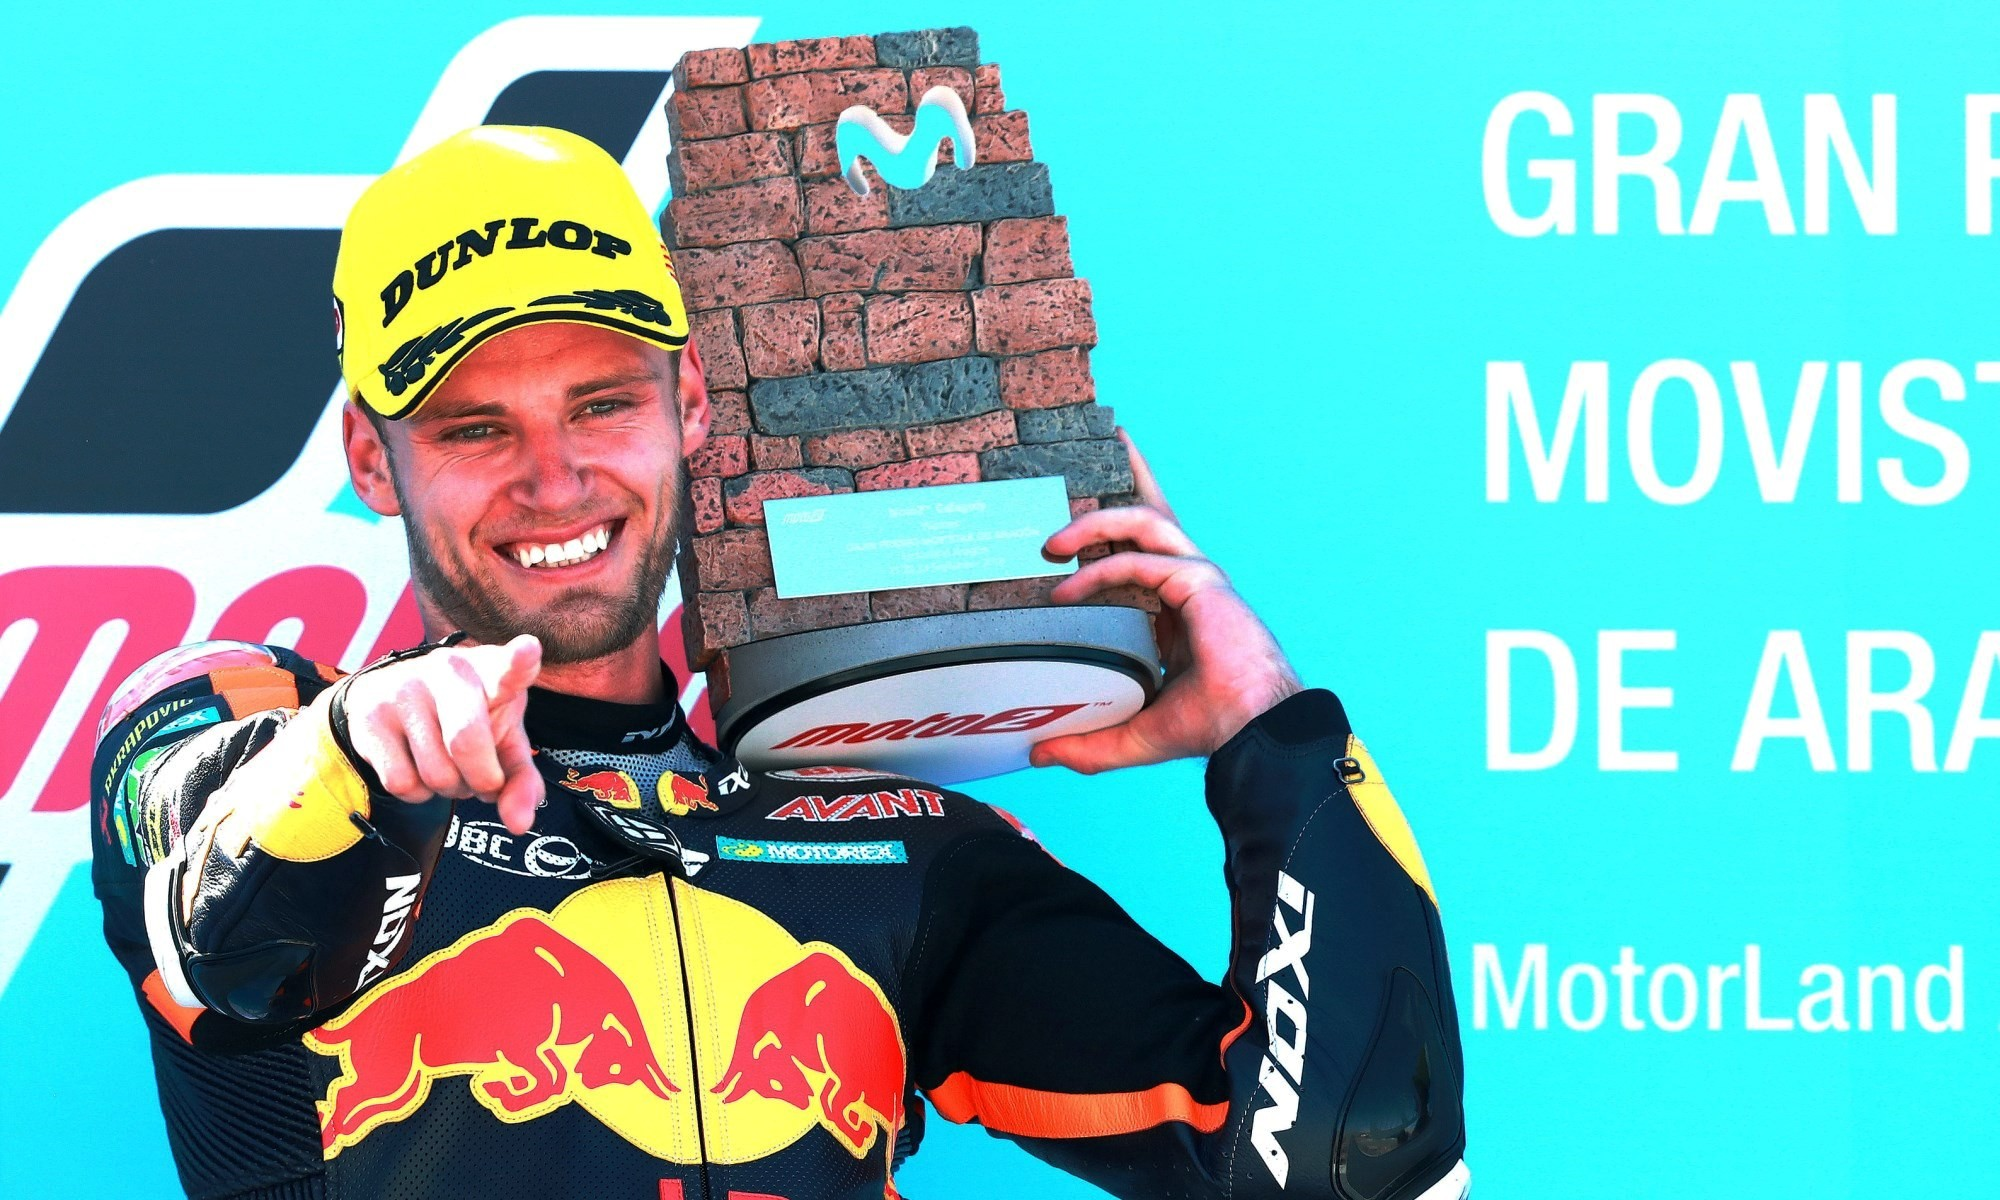 Brad Binder won in Moto2